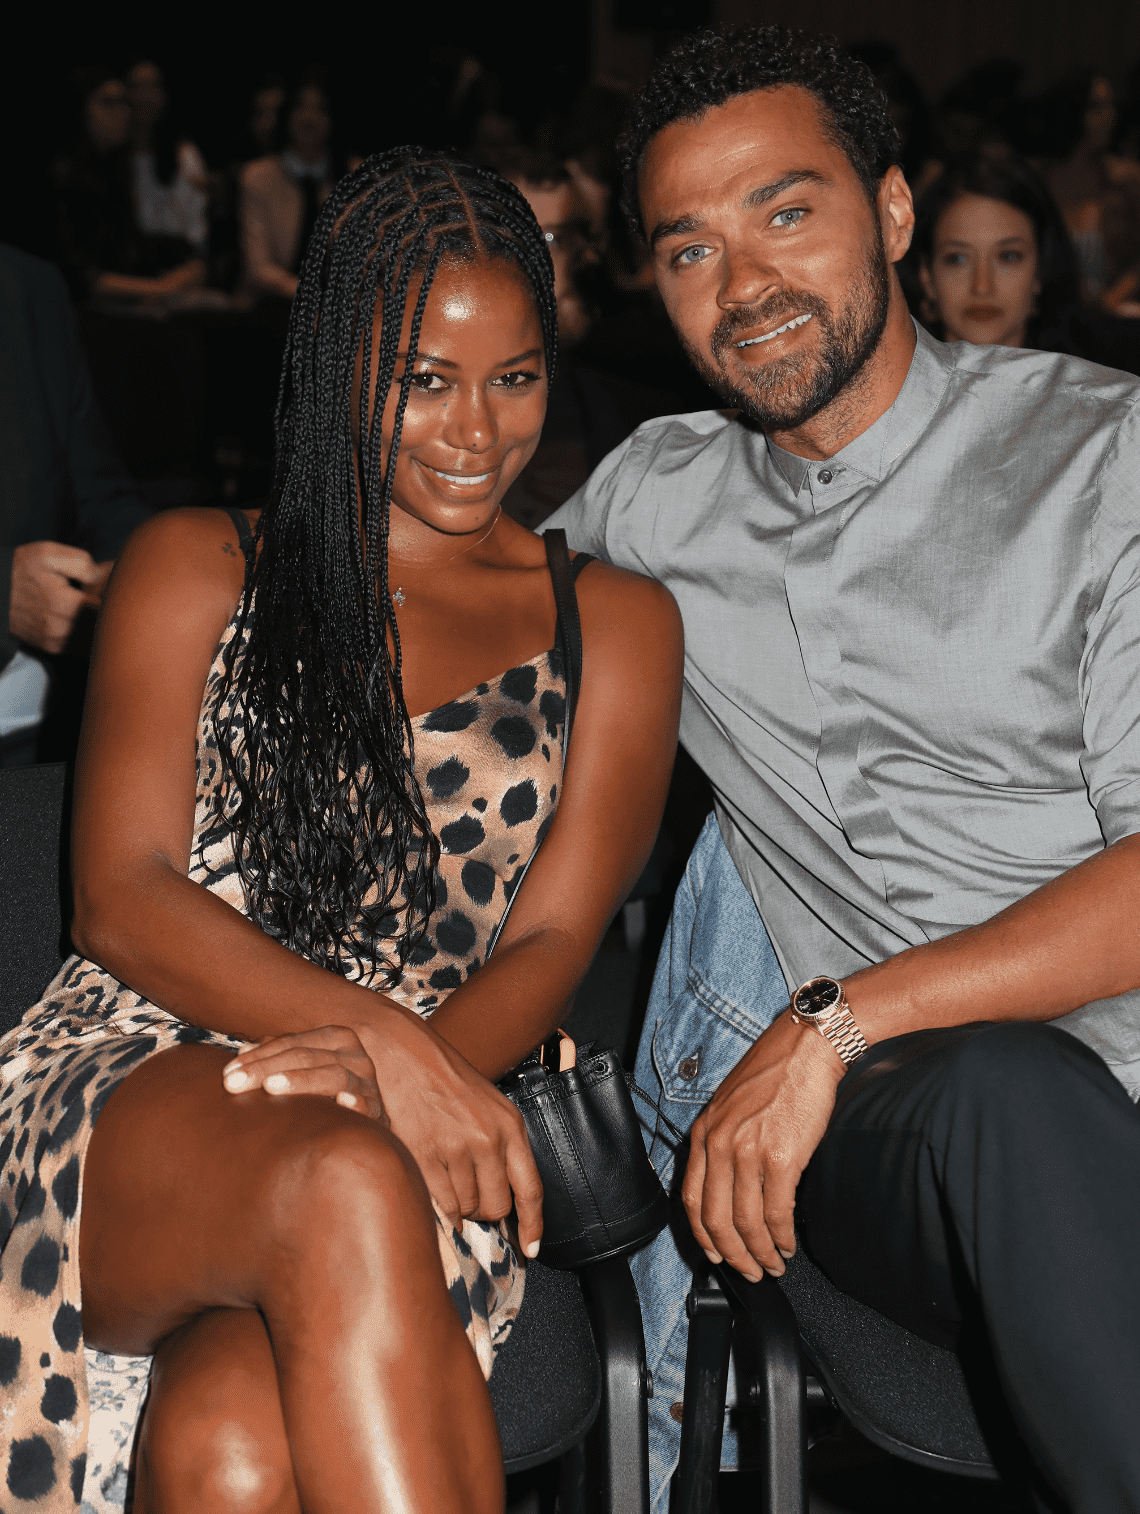 Taylour Paige and Jesse Williams attend the Filming Italy Sardegna Festival 2019 Day 2 at Forte Village Resort on June 14, 2019. | Source: Getty Images